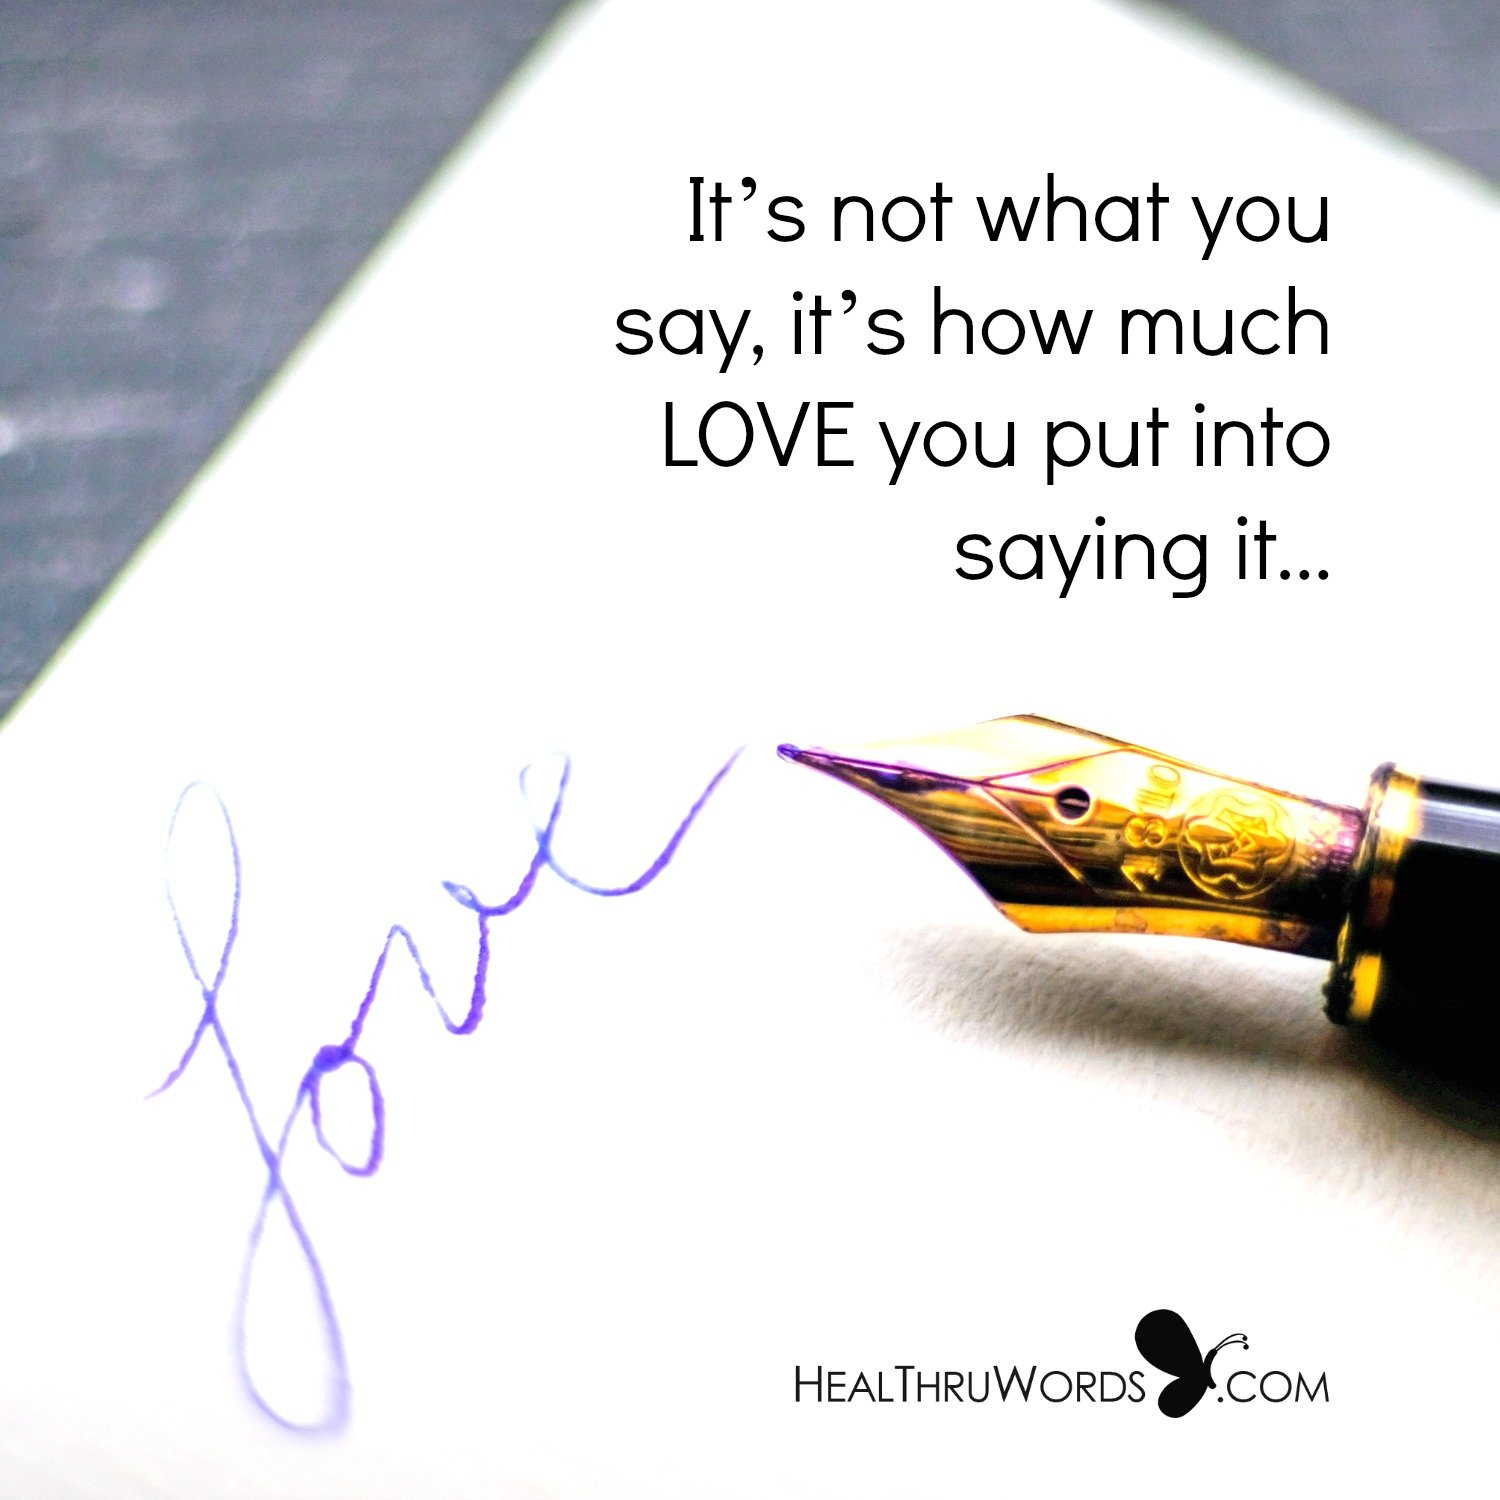 Inspirational Image: Say It With Love